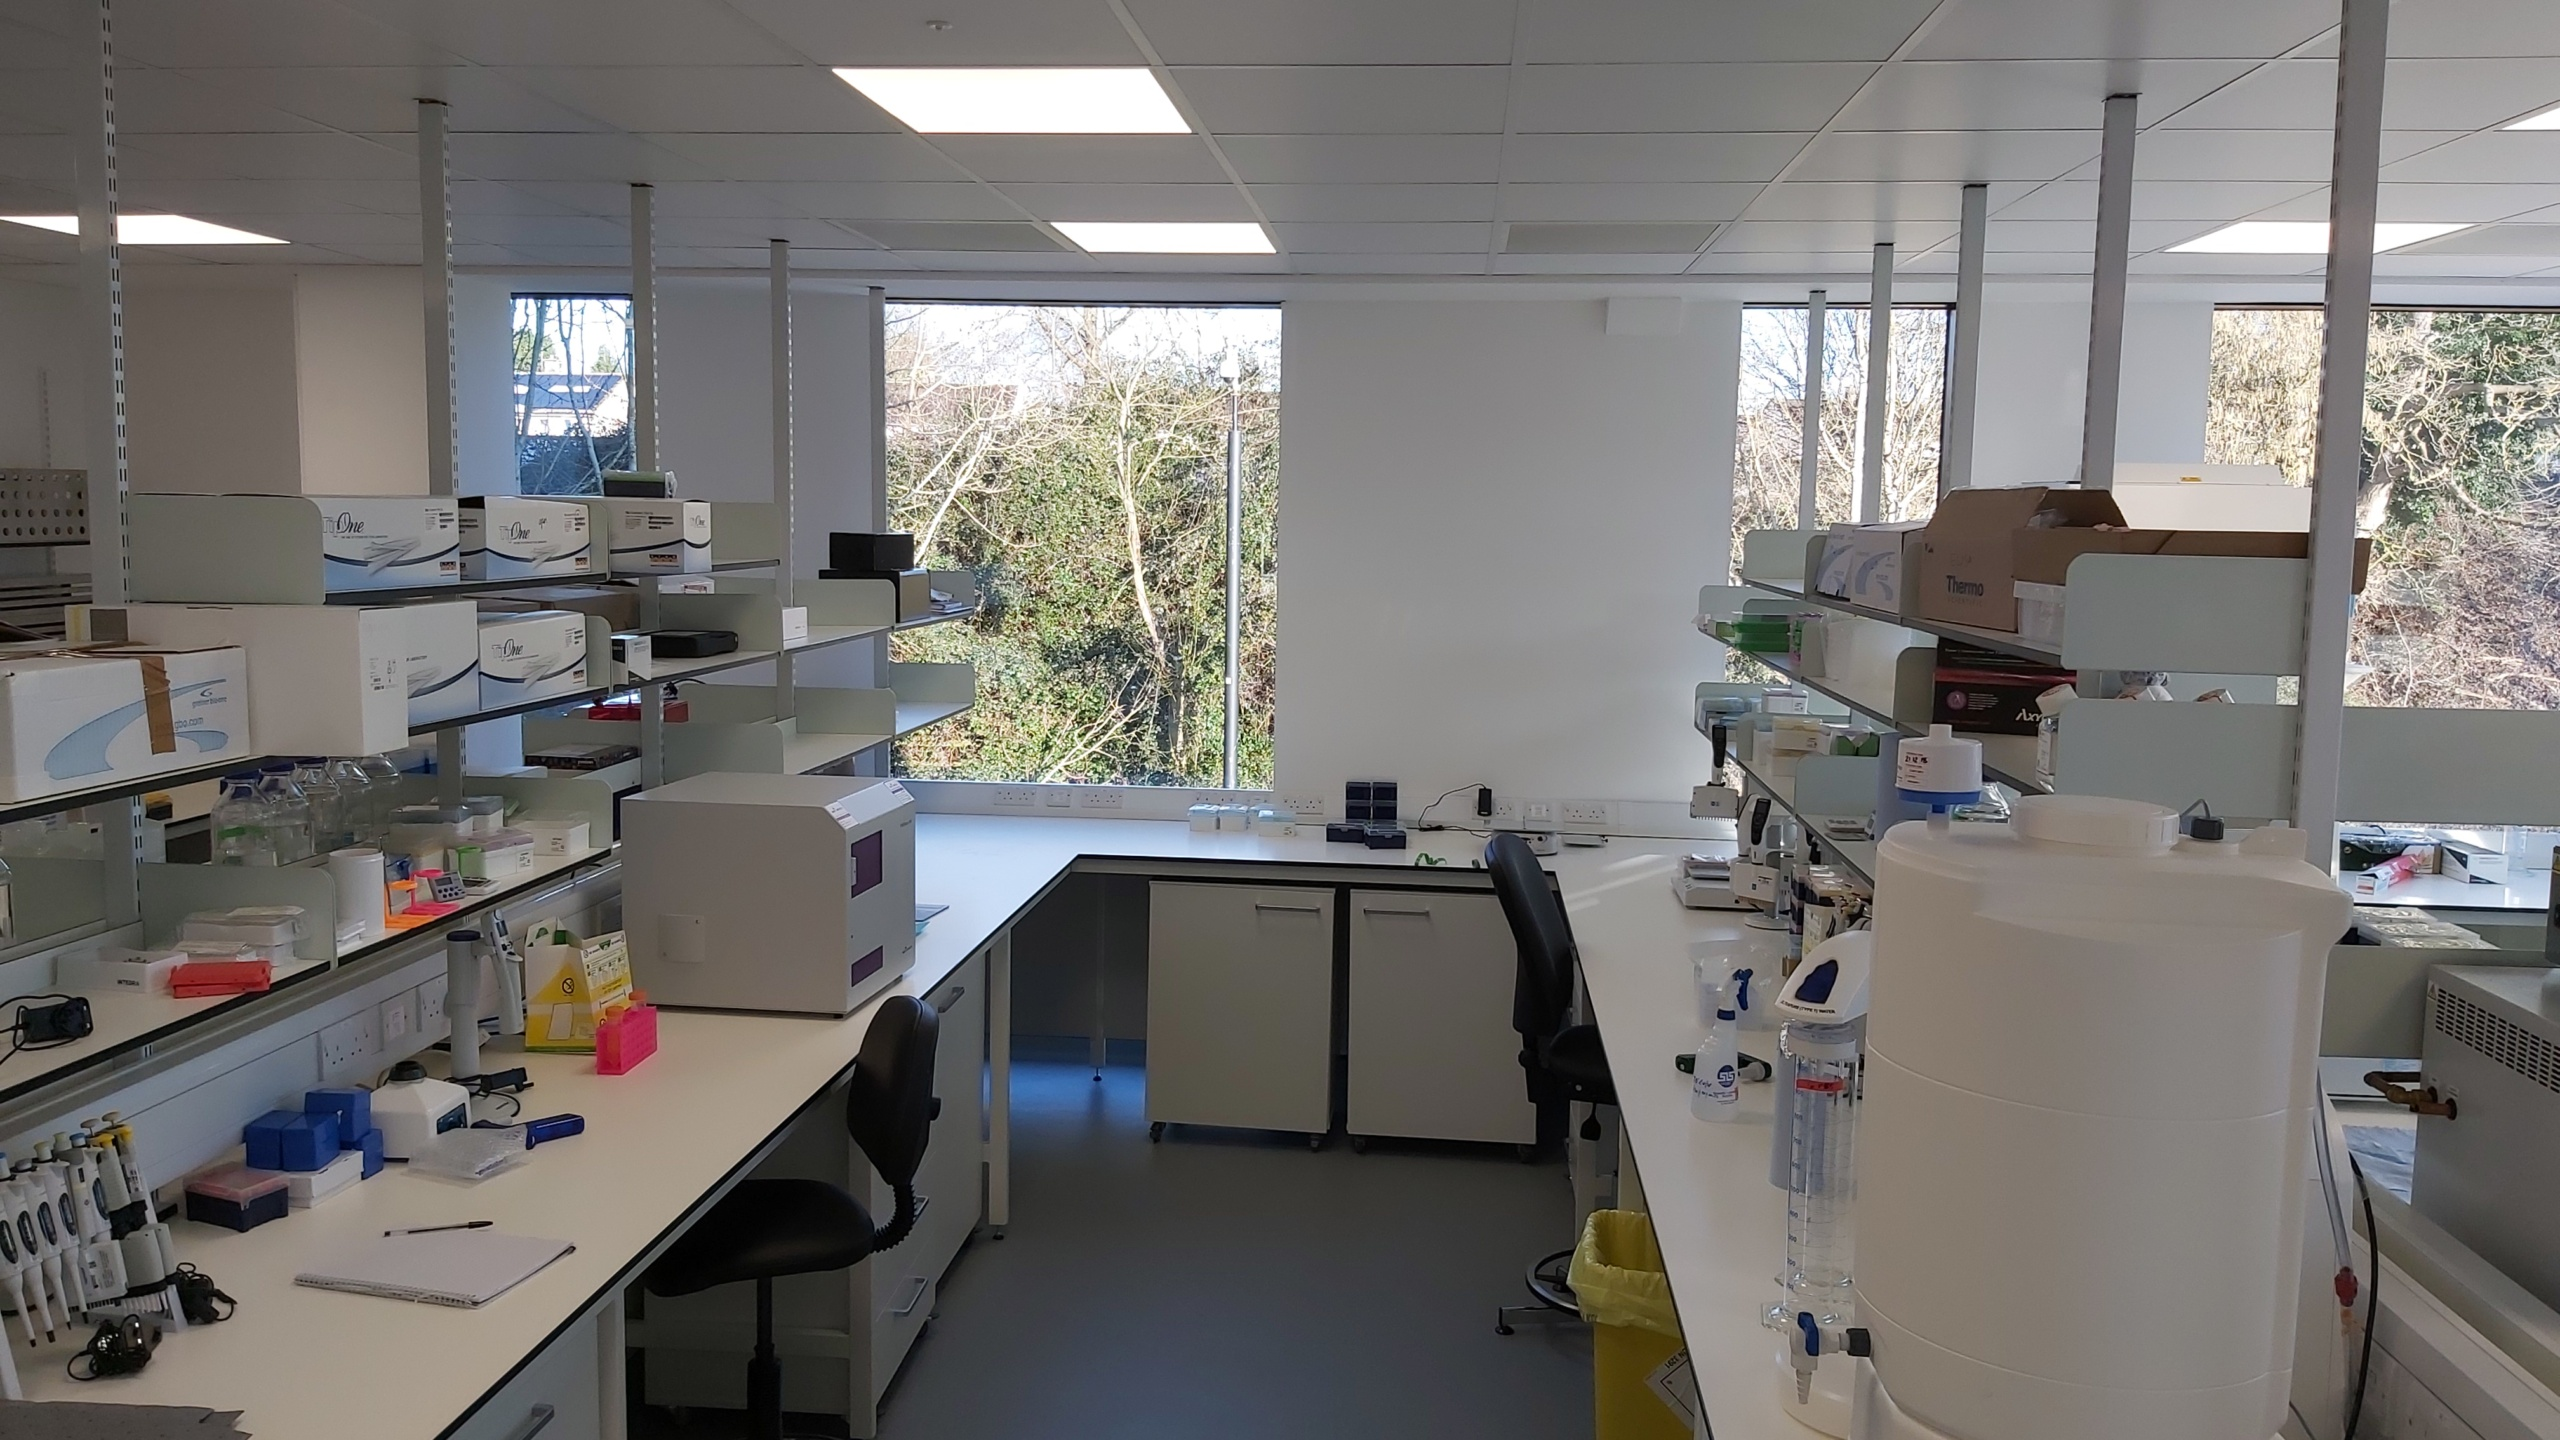 Immunometabolism company Sitryx expands into new space at TOSP